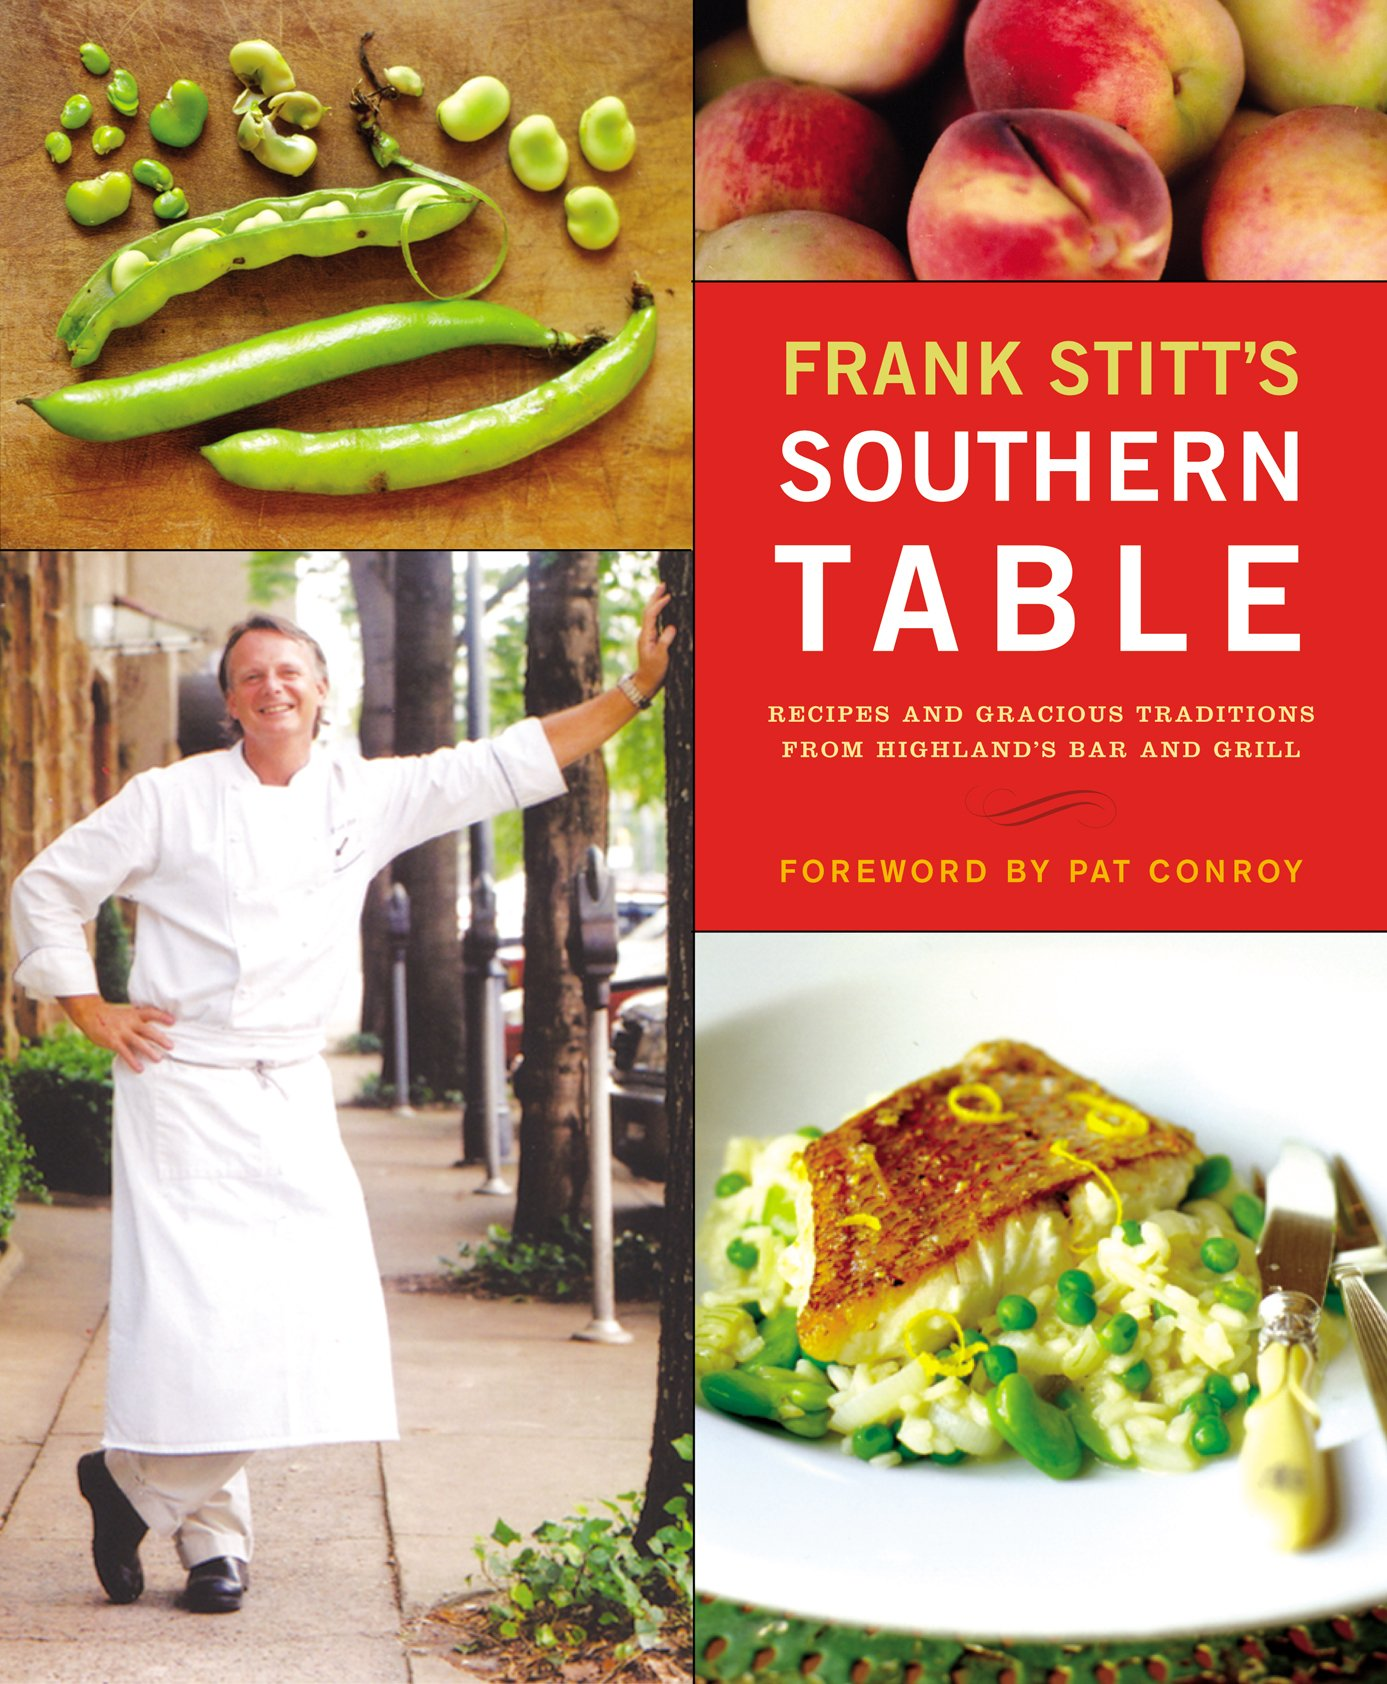 Frank stitts southern table frank stitt christopher hirsheimer frank stitts southern table frank stitt christopher hirsheimer pat conroy 0791243652469 amazon books forumfinder Images